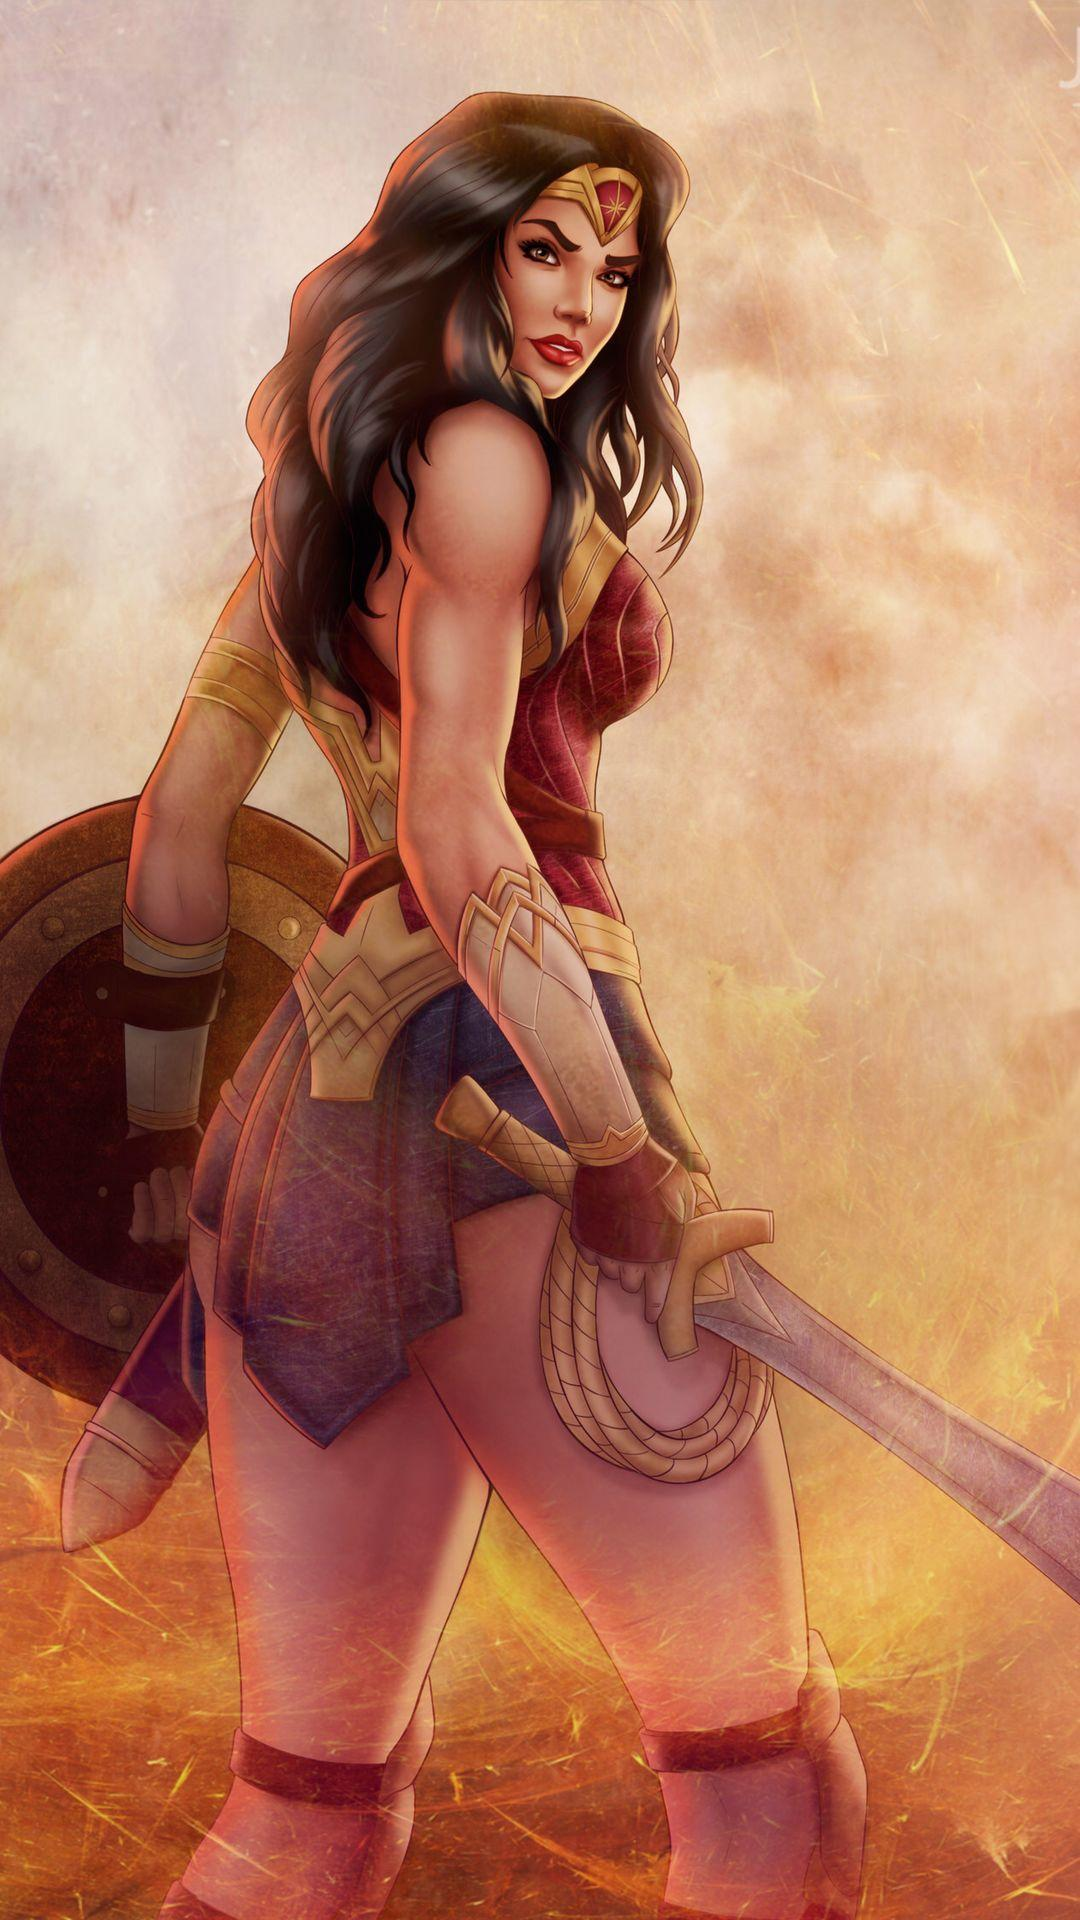 Wonder Woman Hd Wallpaper For Android Apk Download